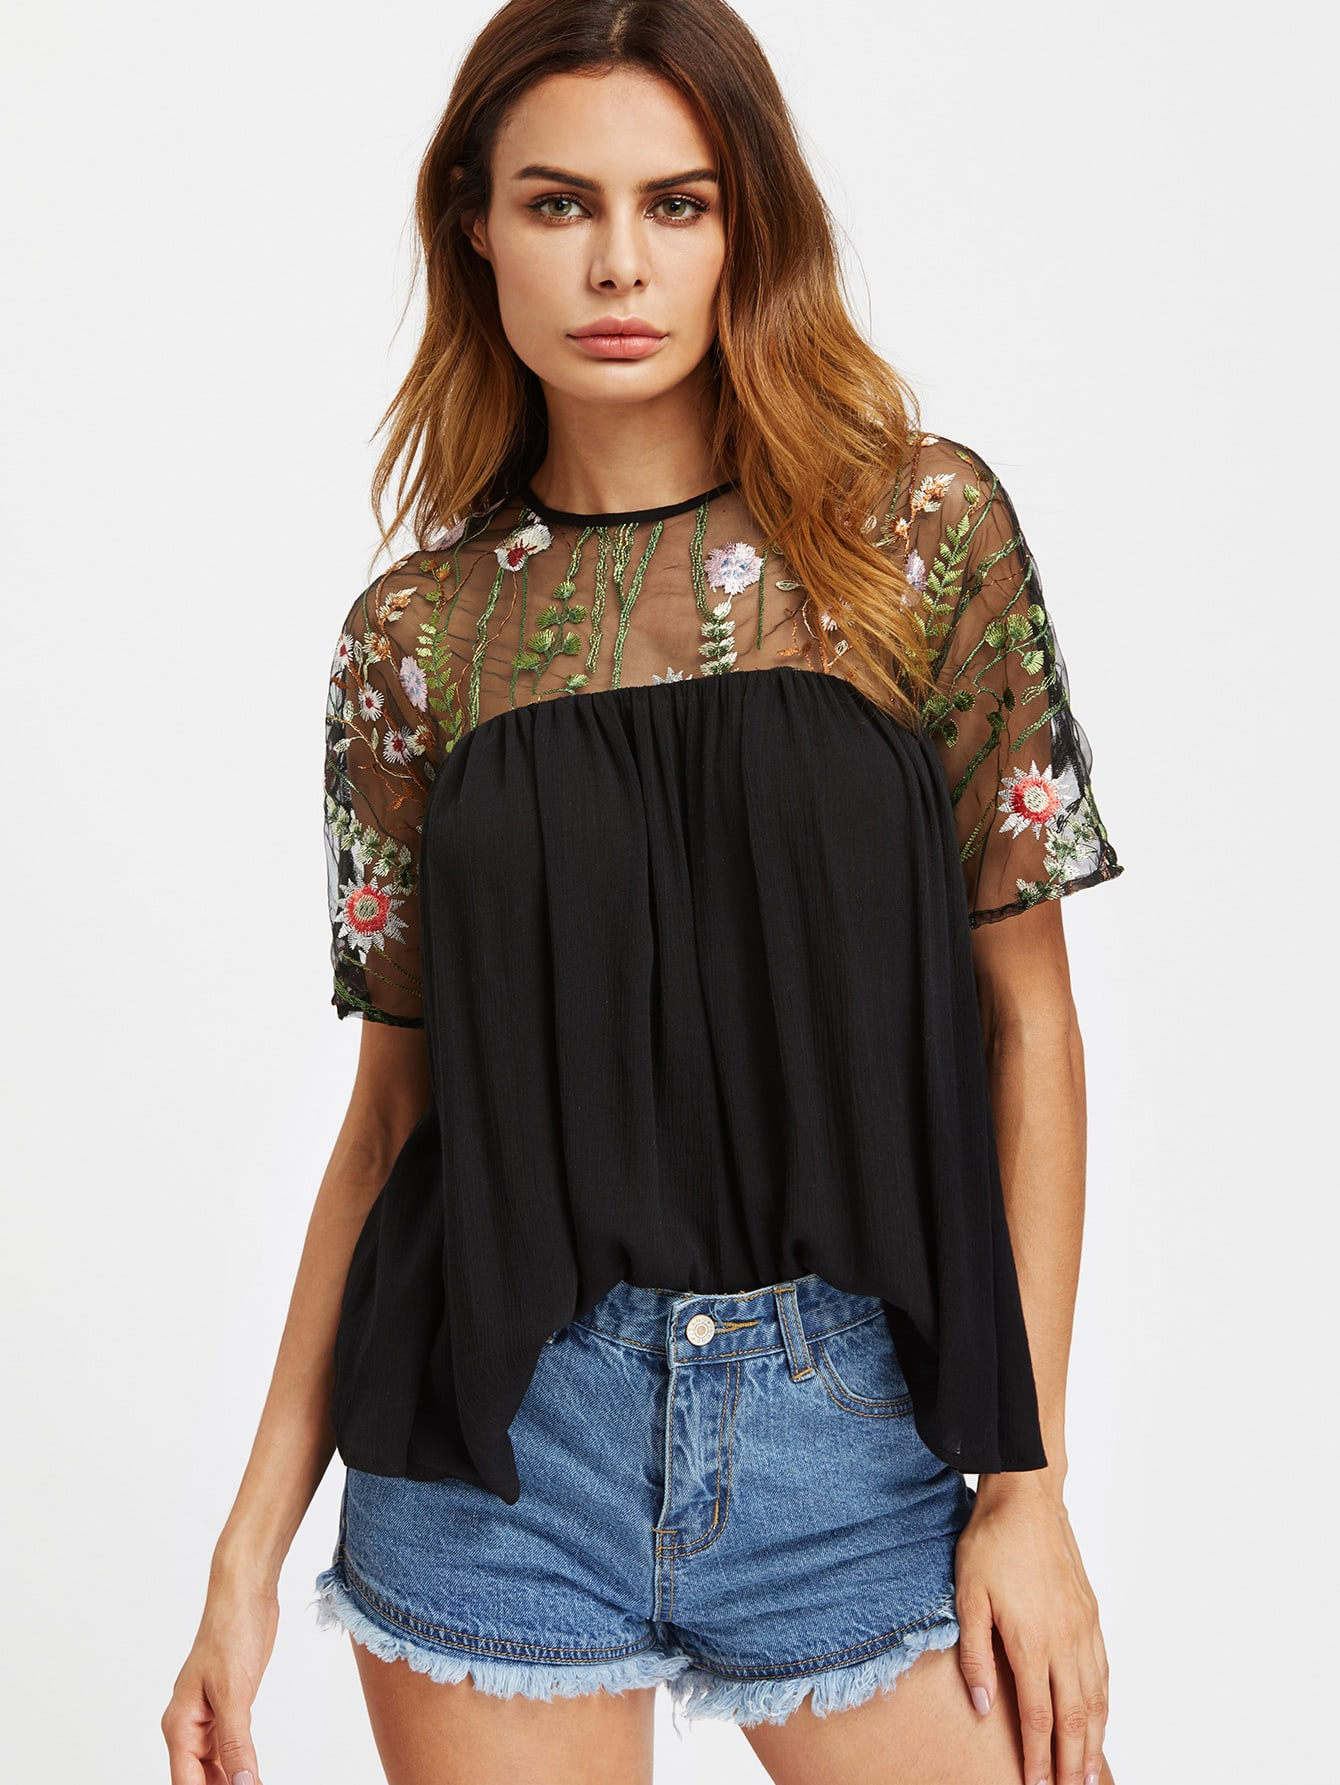 Embroidered Mesh Shoulder Buttoned Keyhole Back Smock Top buttoned keyhole back 2 in 1 embroidered mesh top